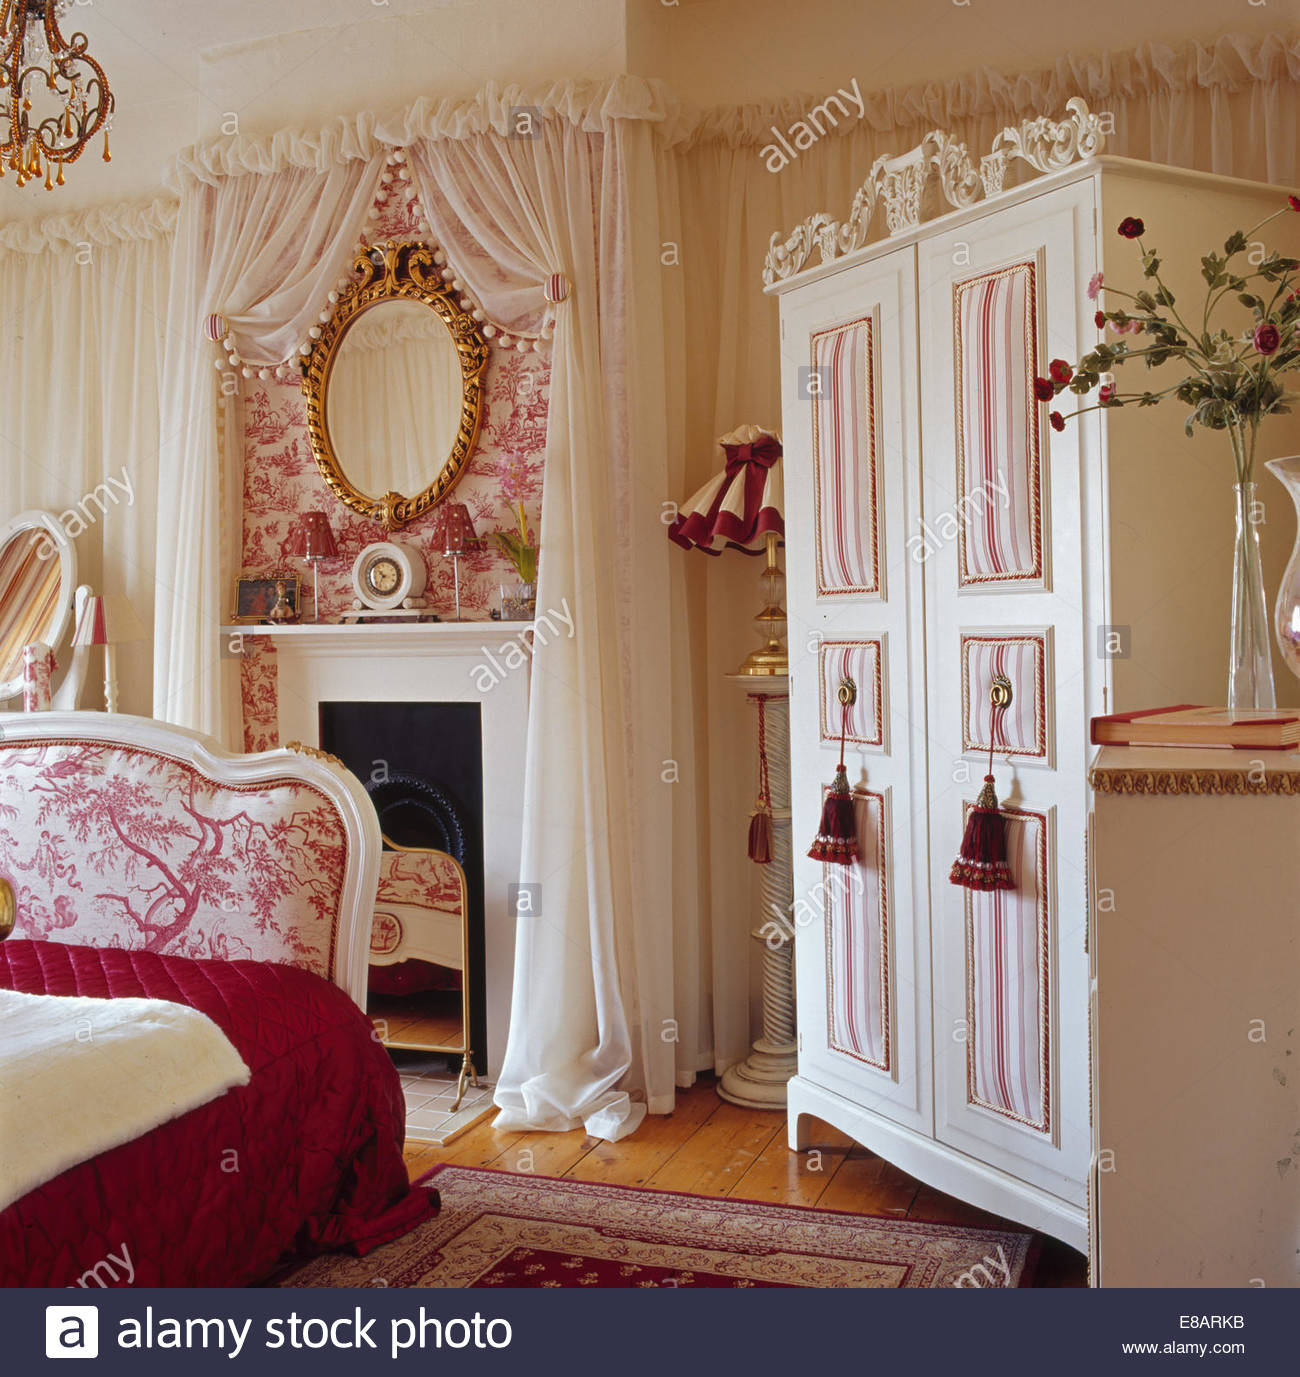 Cream wardrobe in bedroom with cream voile drapes on walls and 1300x1377